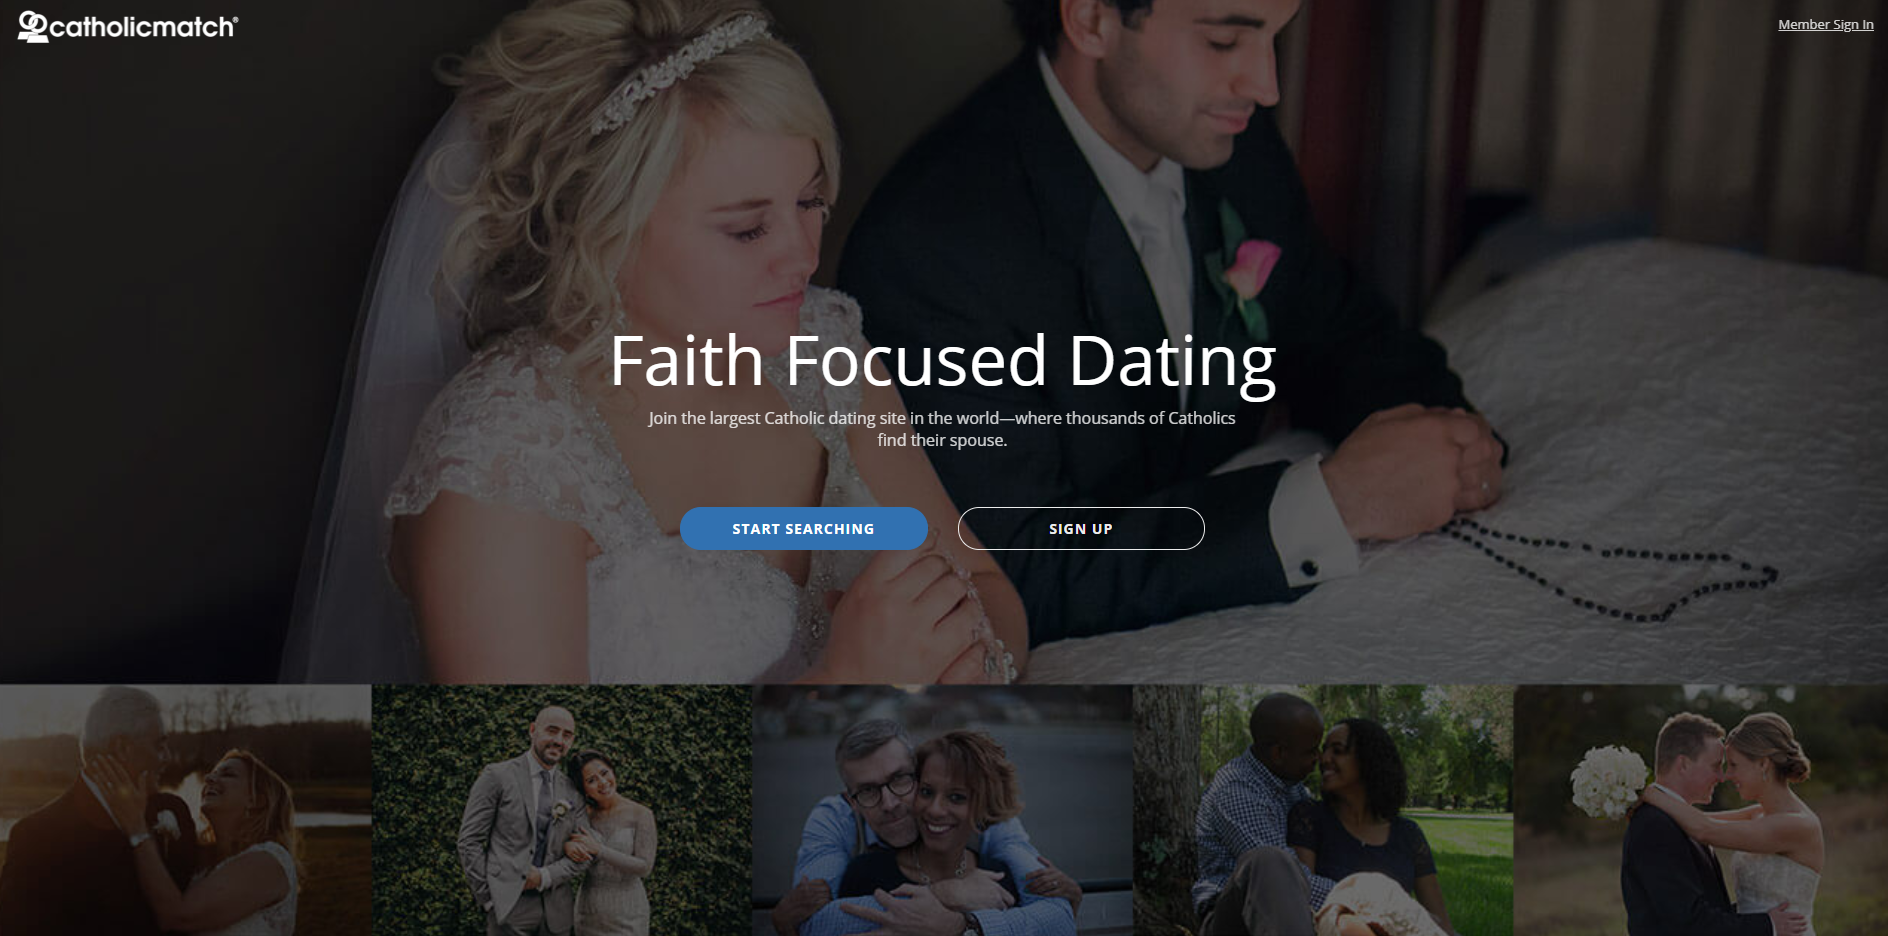 What dating sites are actually worth it